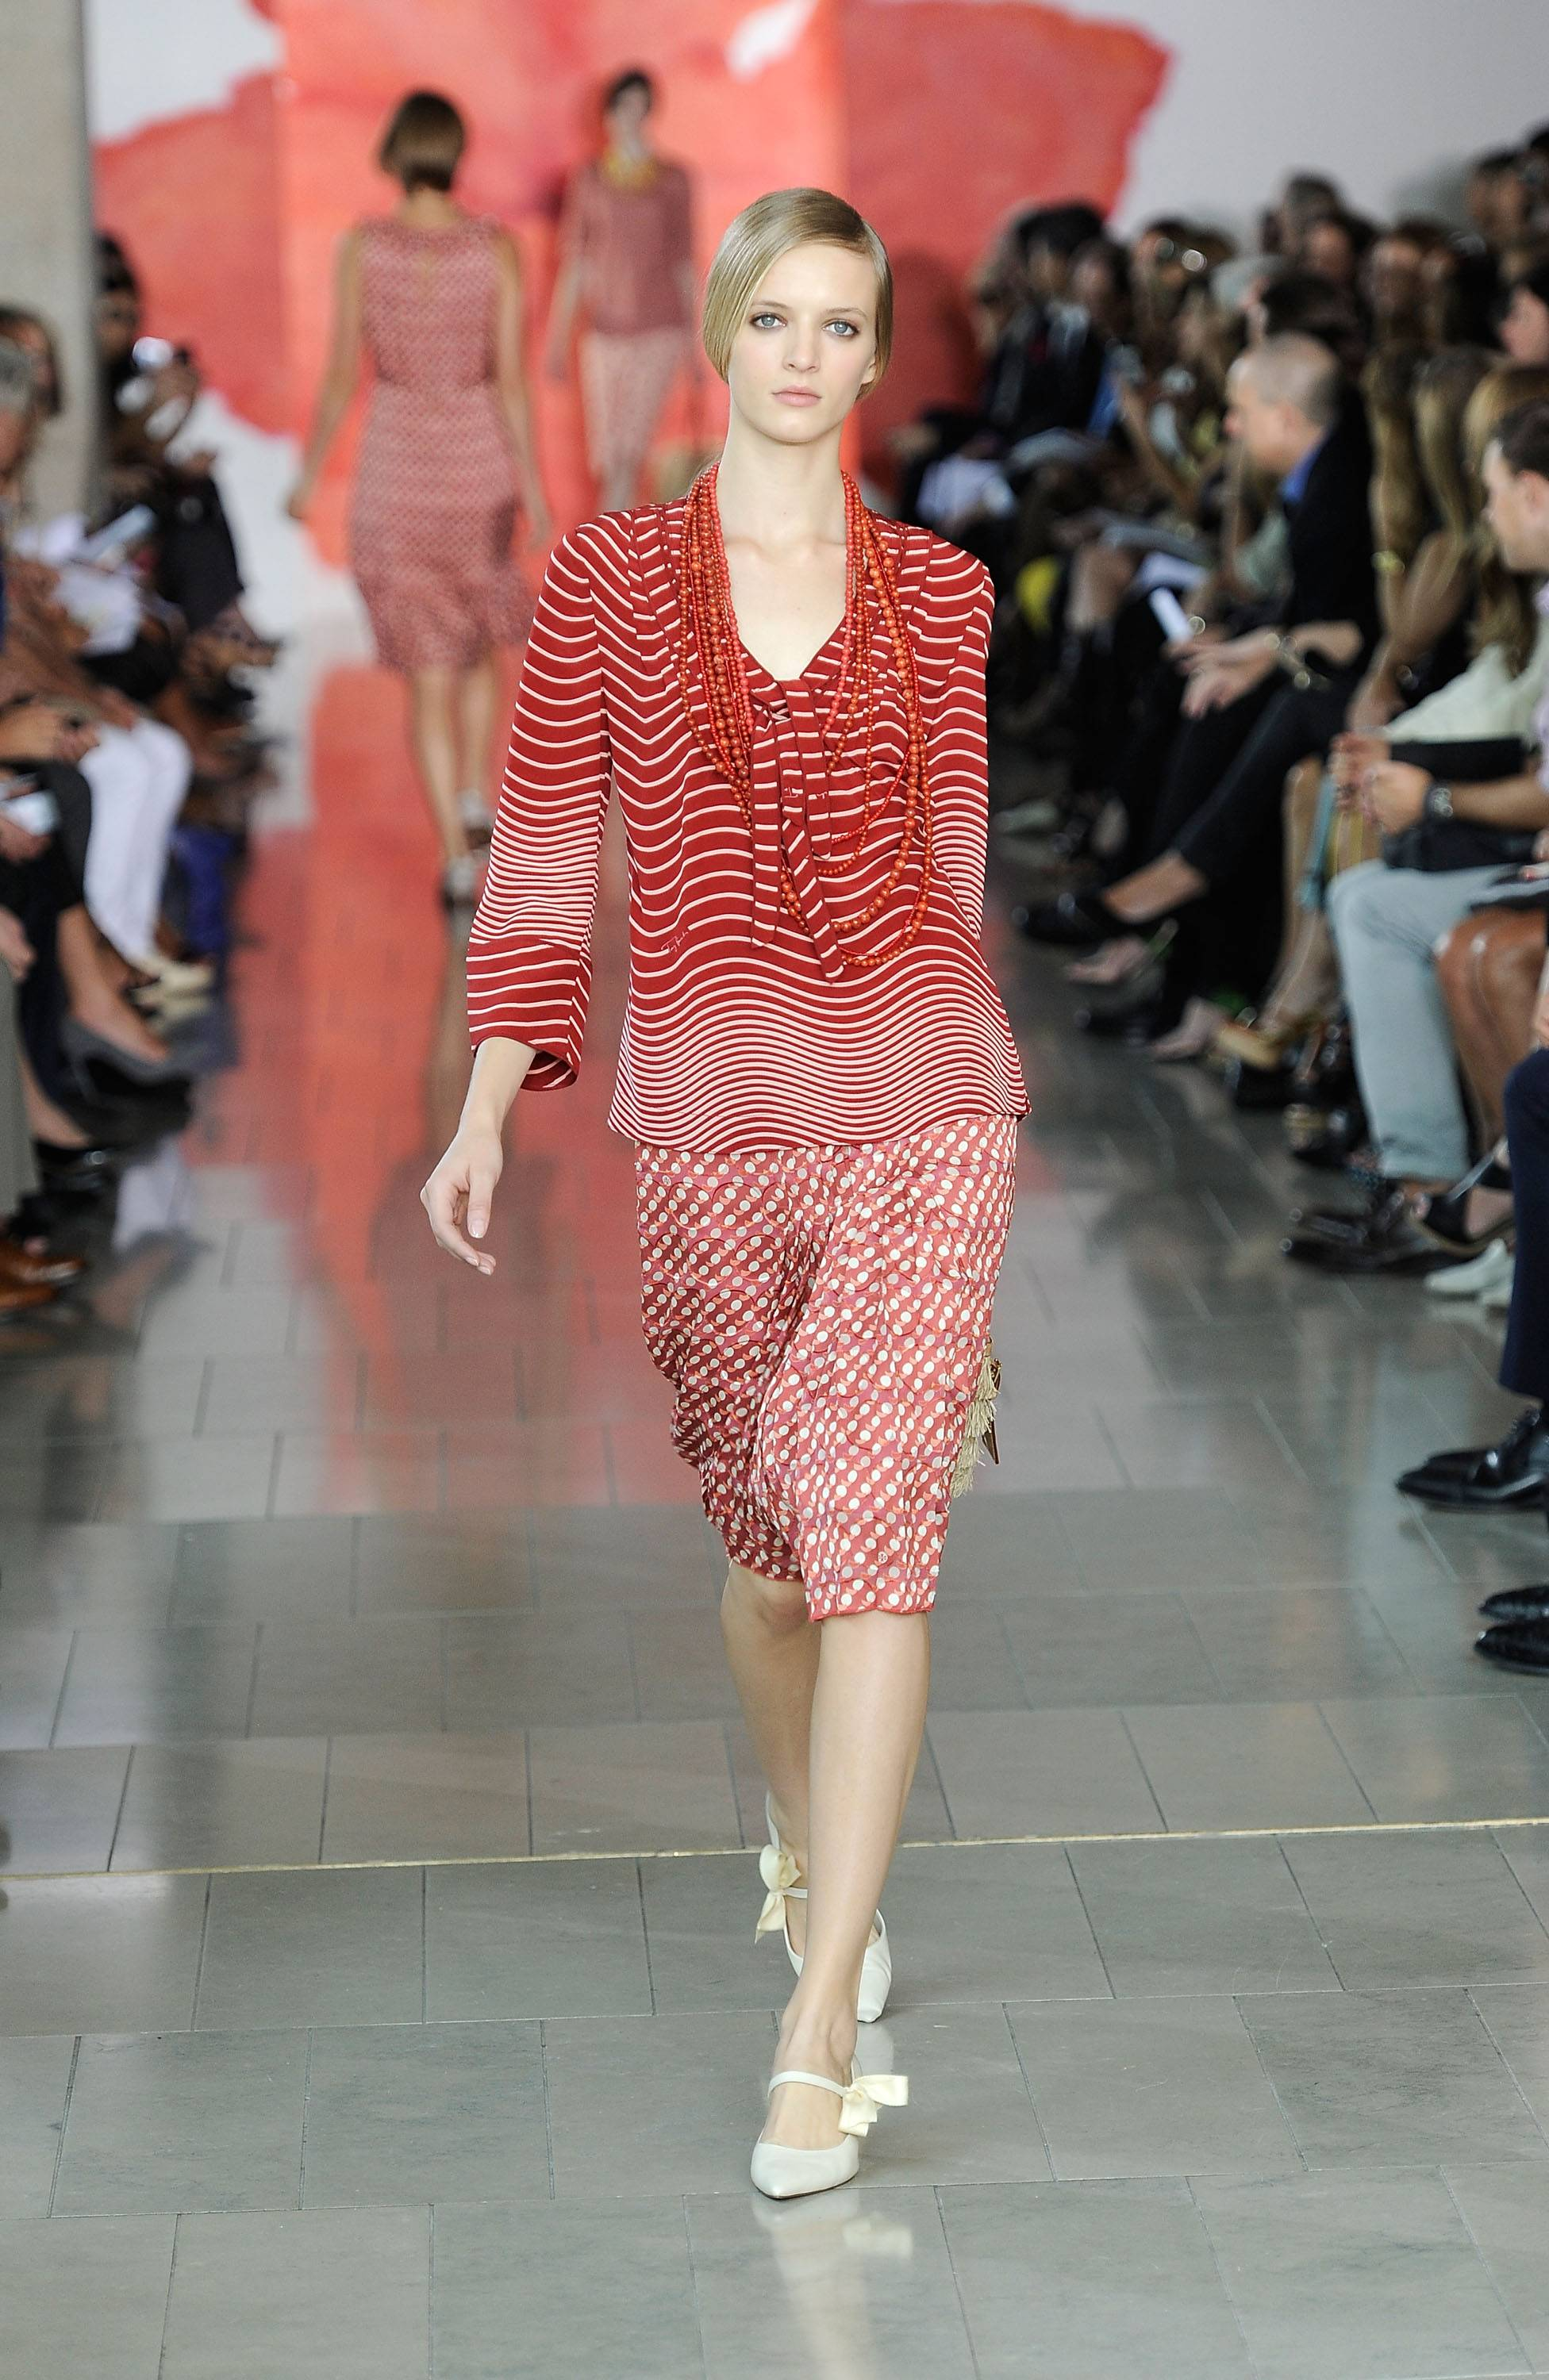 Tory Burch Runway Presentation 9, Mercedes Benz Fashion Week, s/s 2012